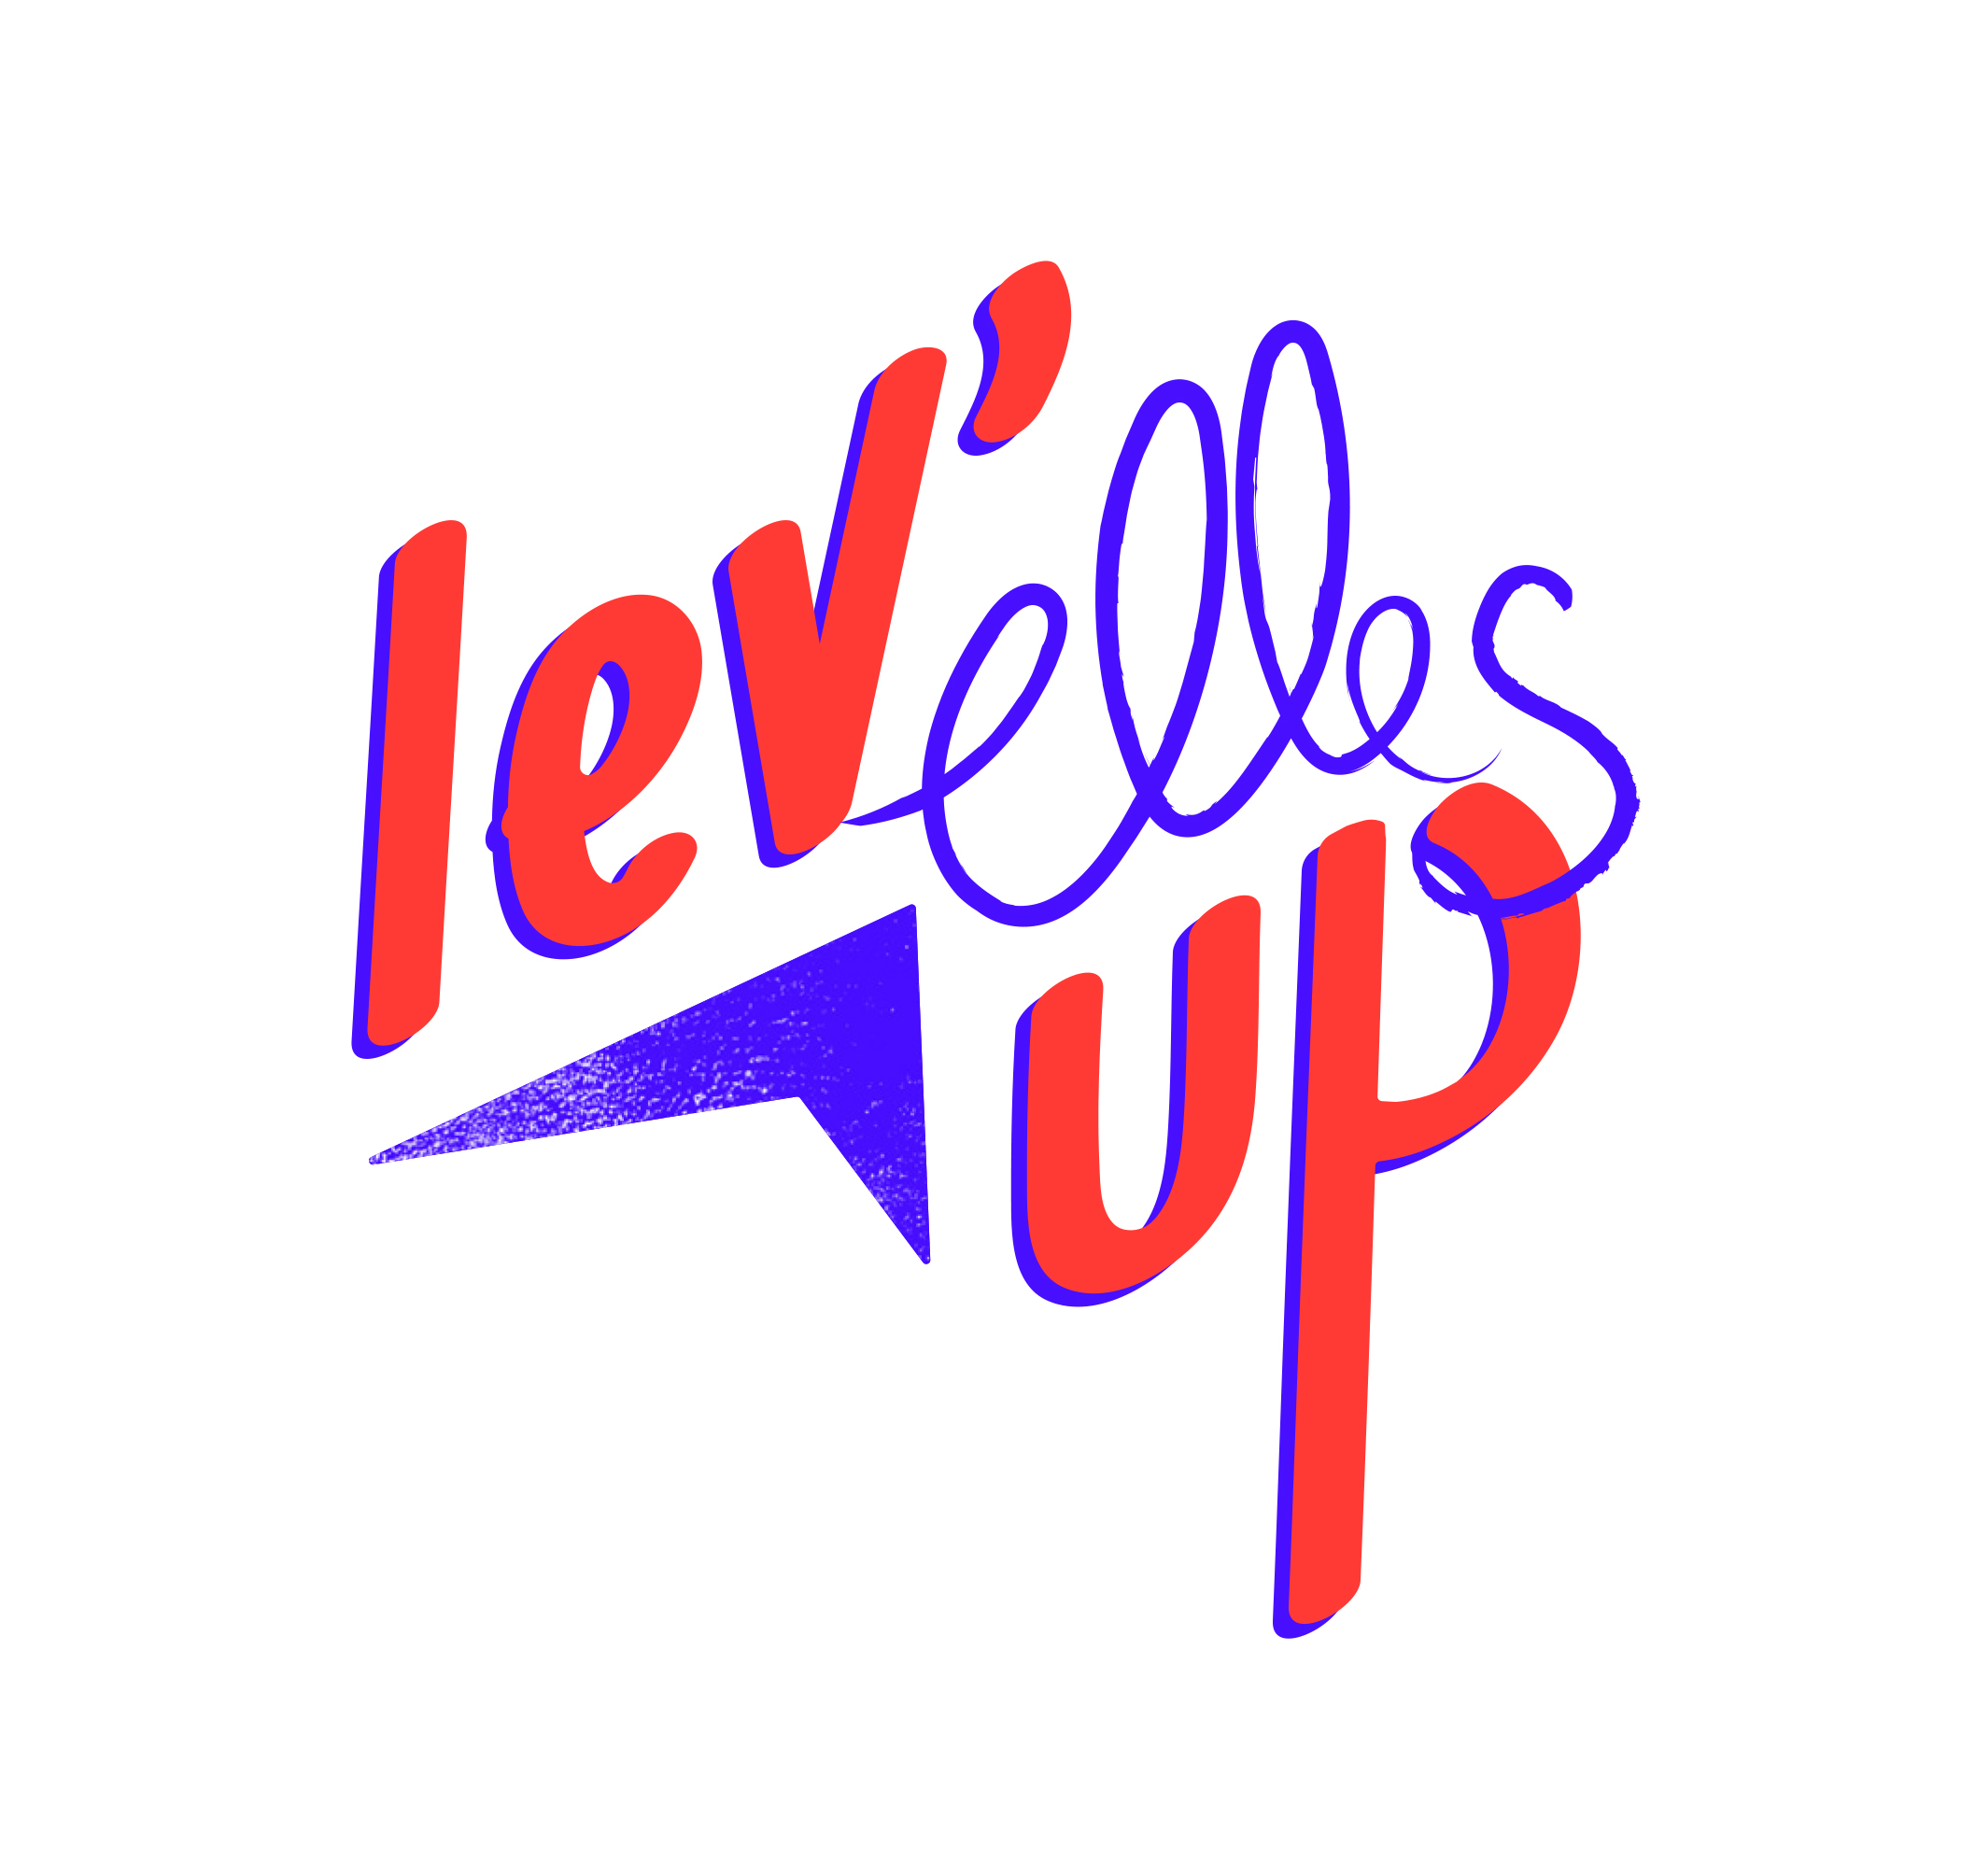 Association - Lev'Elles Up